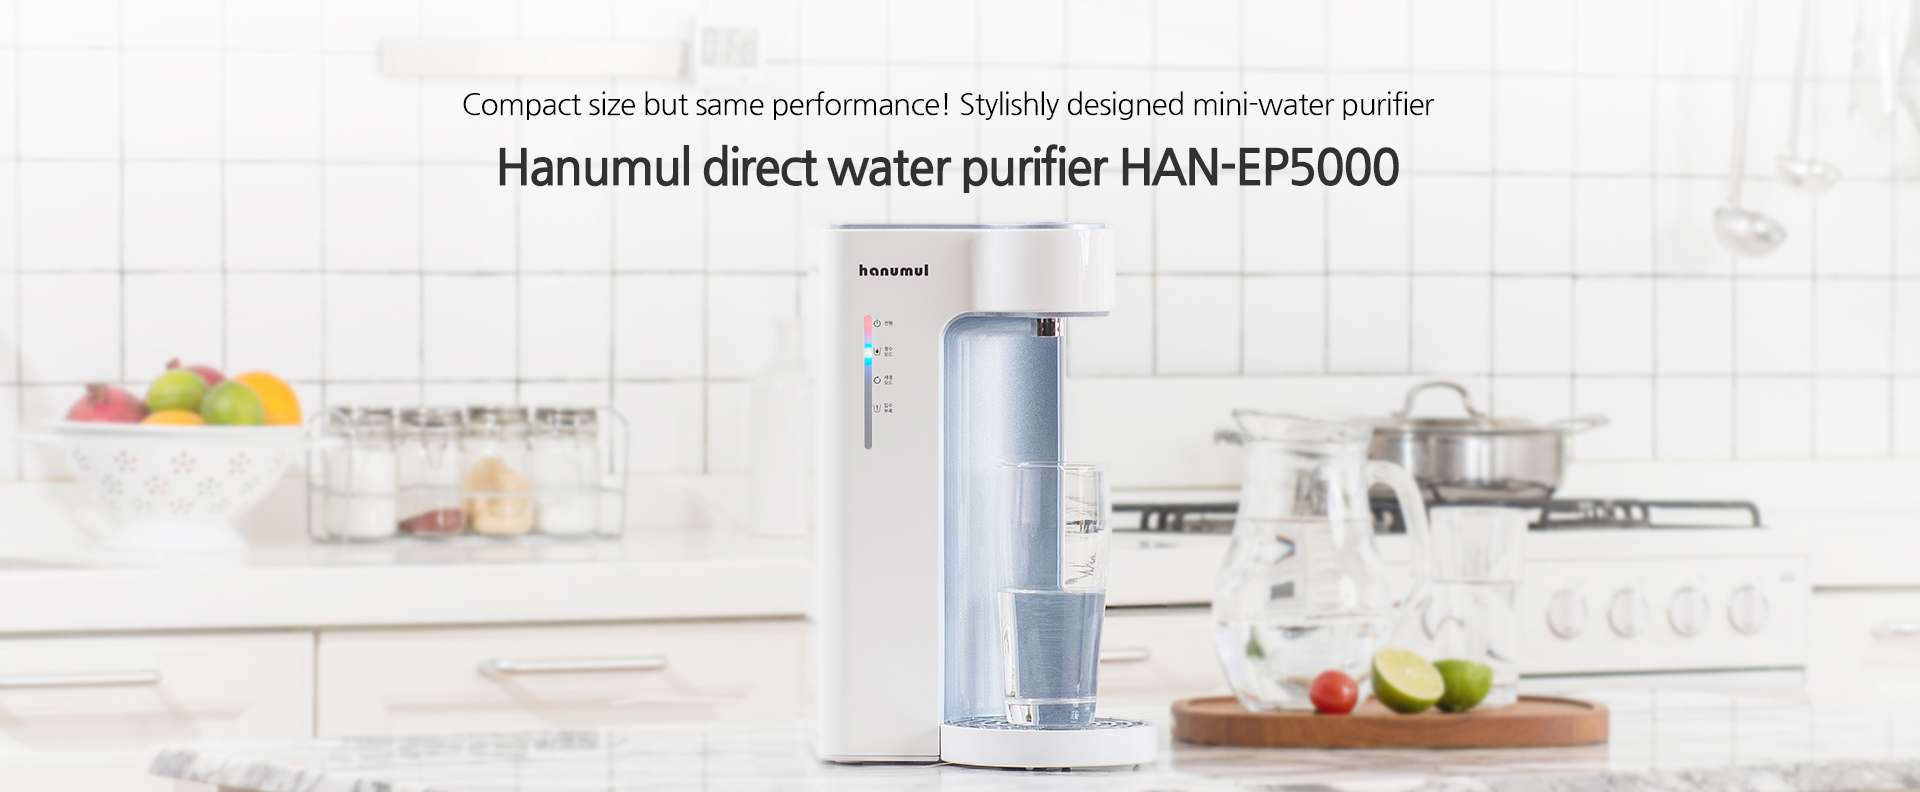 Compact size but same performance! Stylishly designed mini-water purifier,HAN-EP5000 Hanumul direct water purifier HAN-EP500